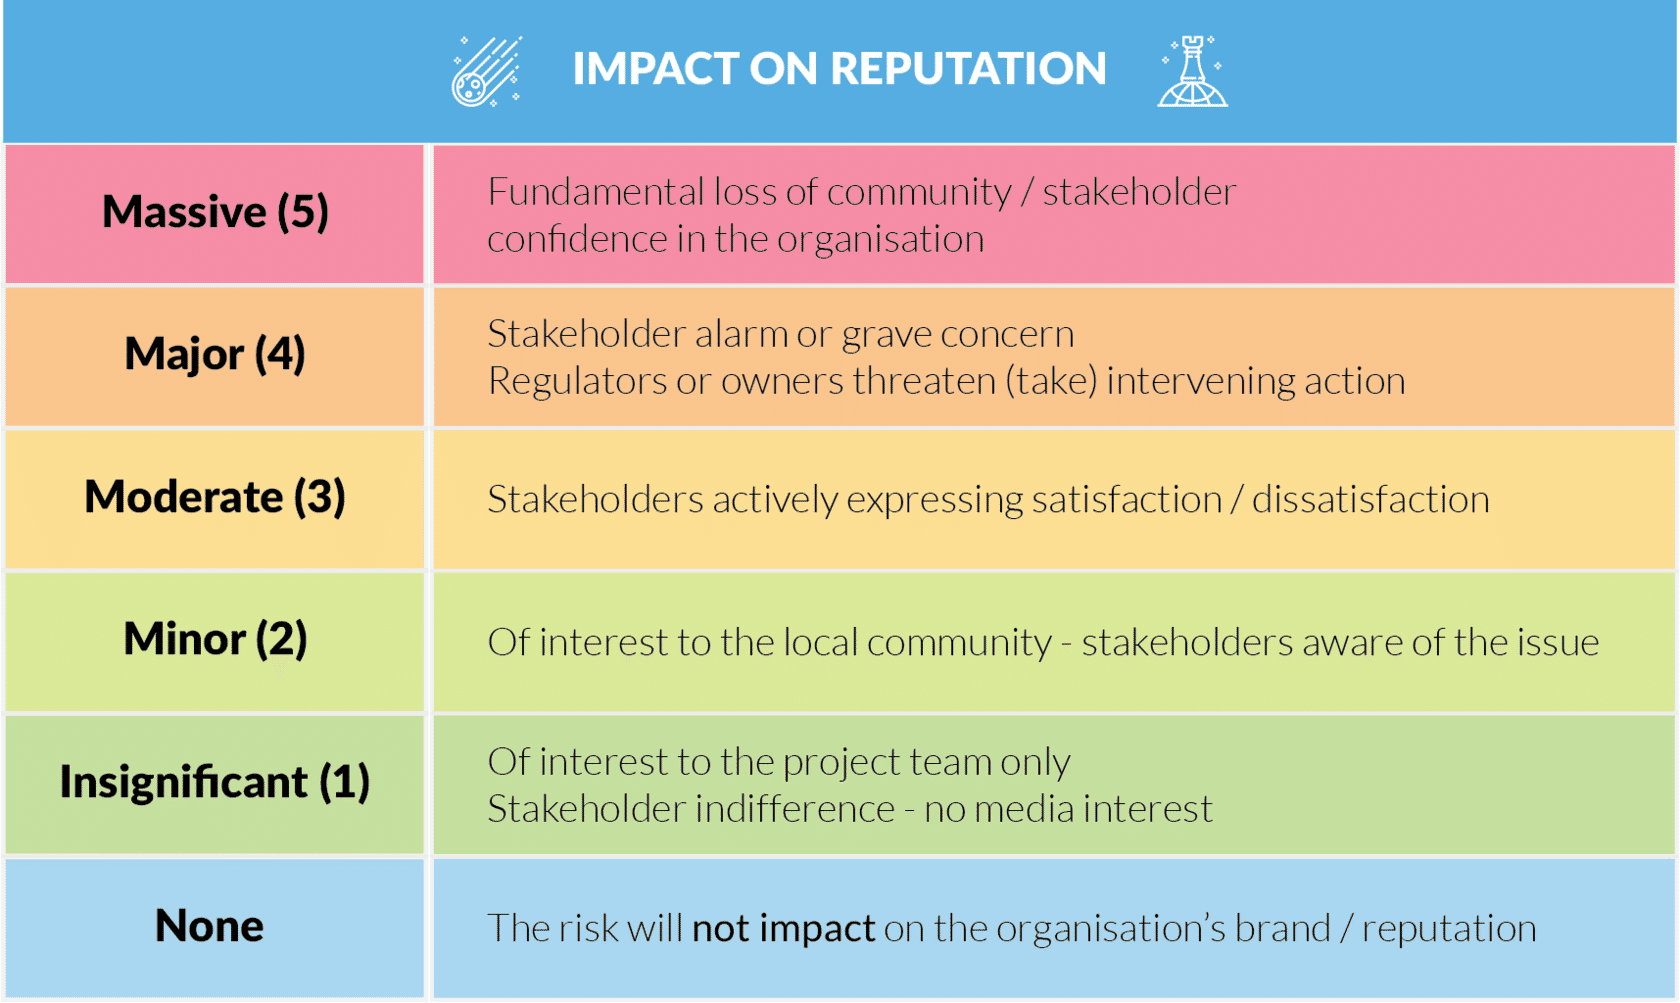 A table shows the impact on reputation